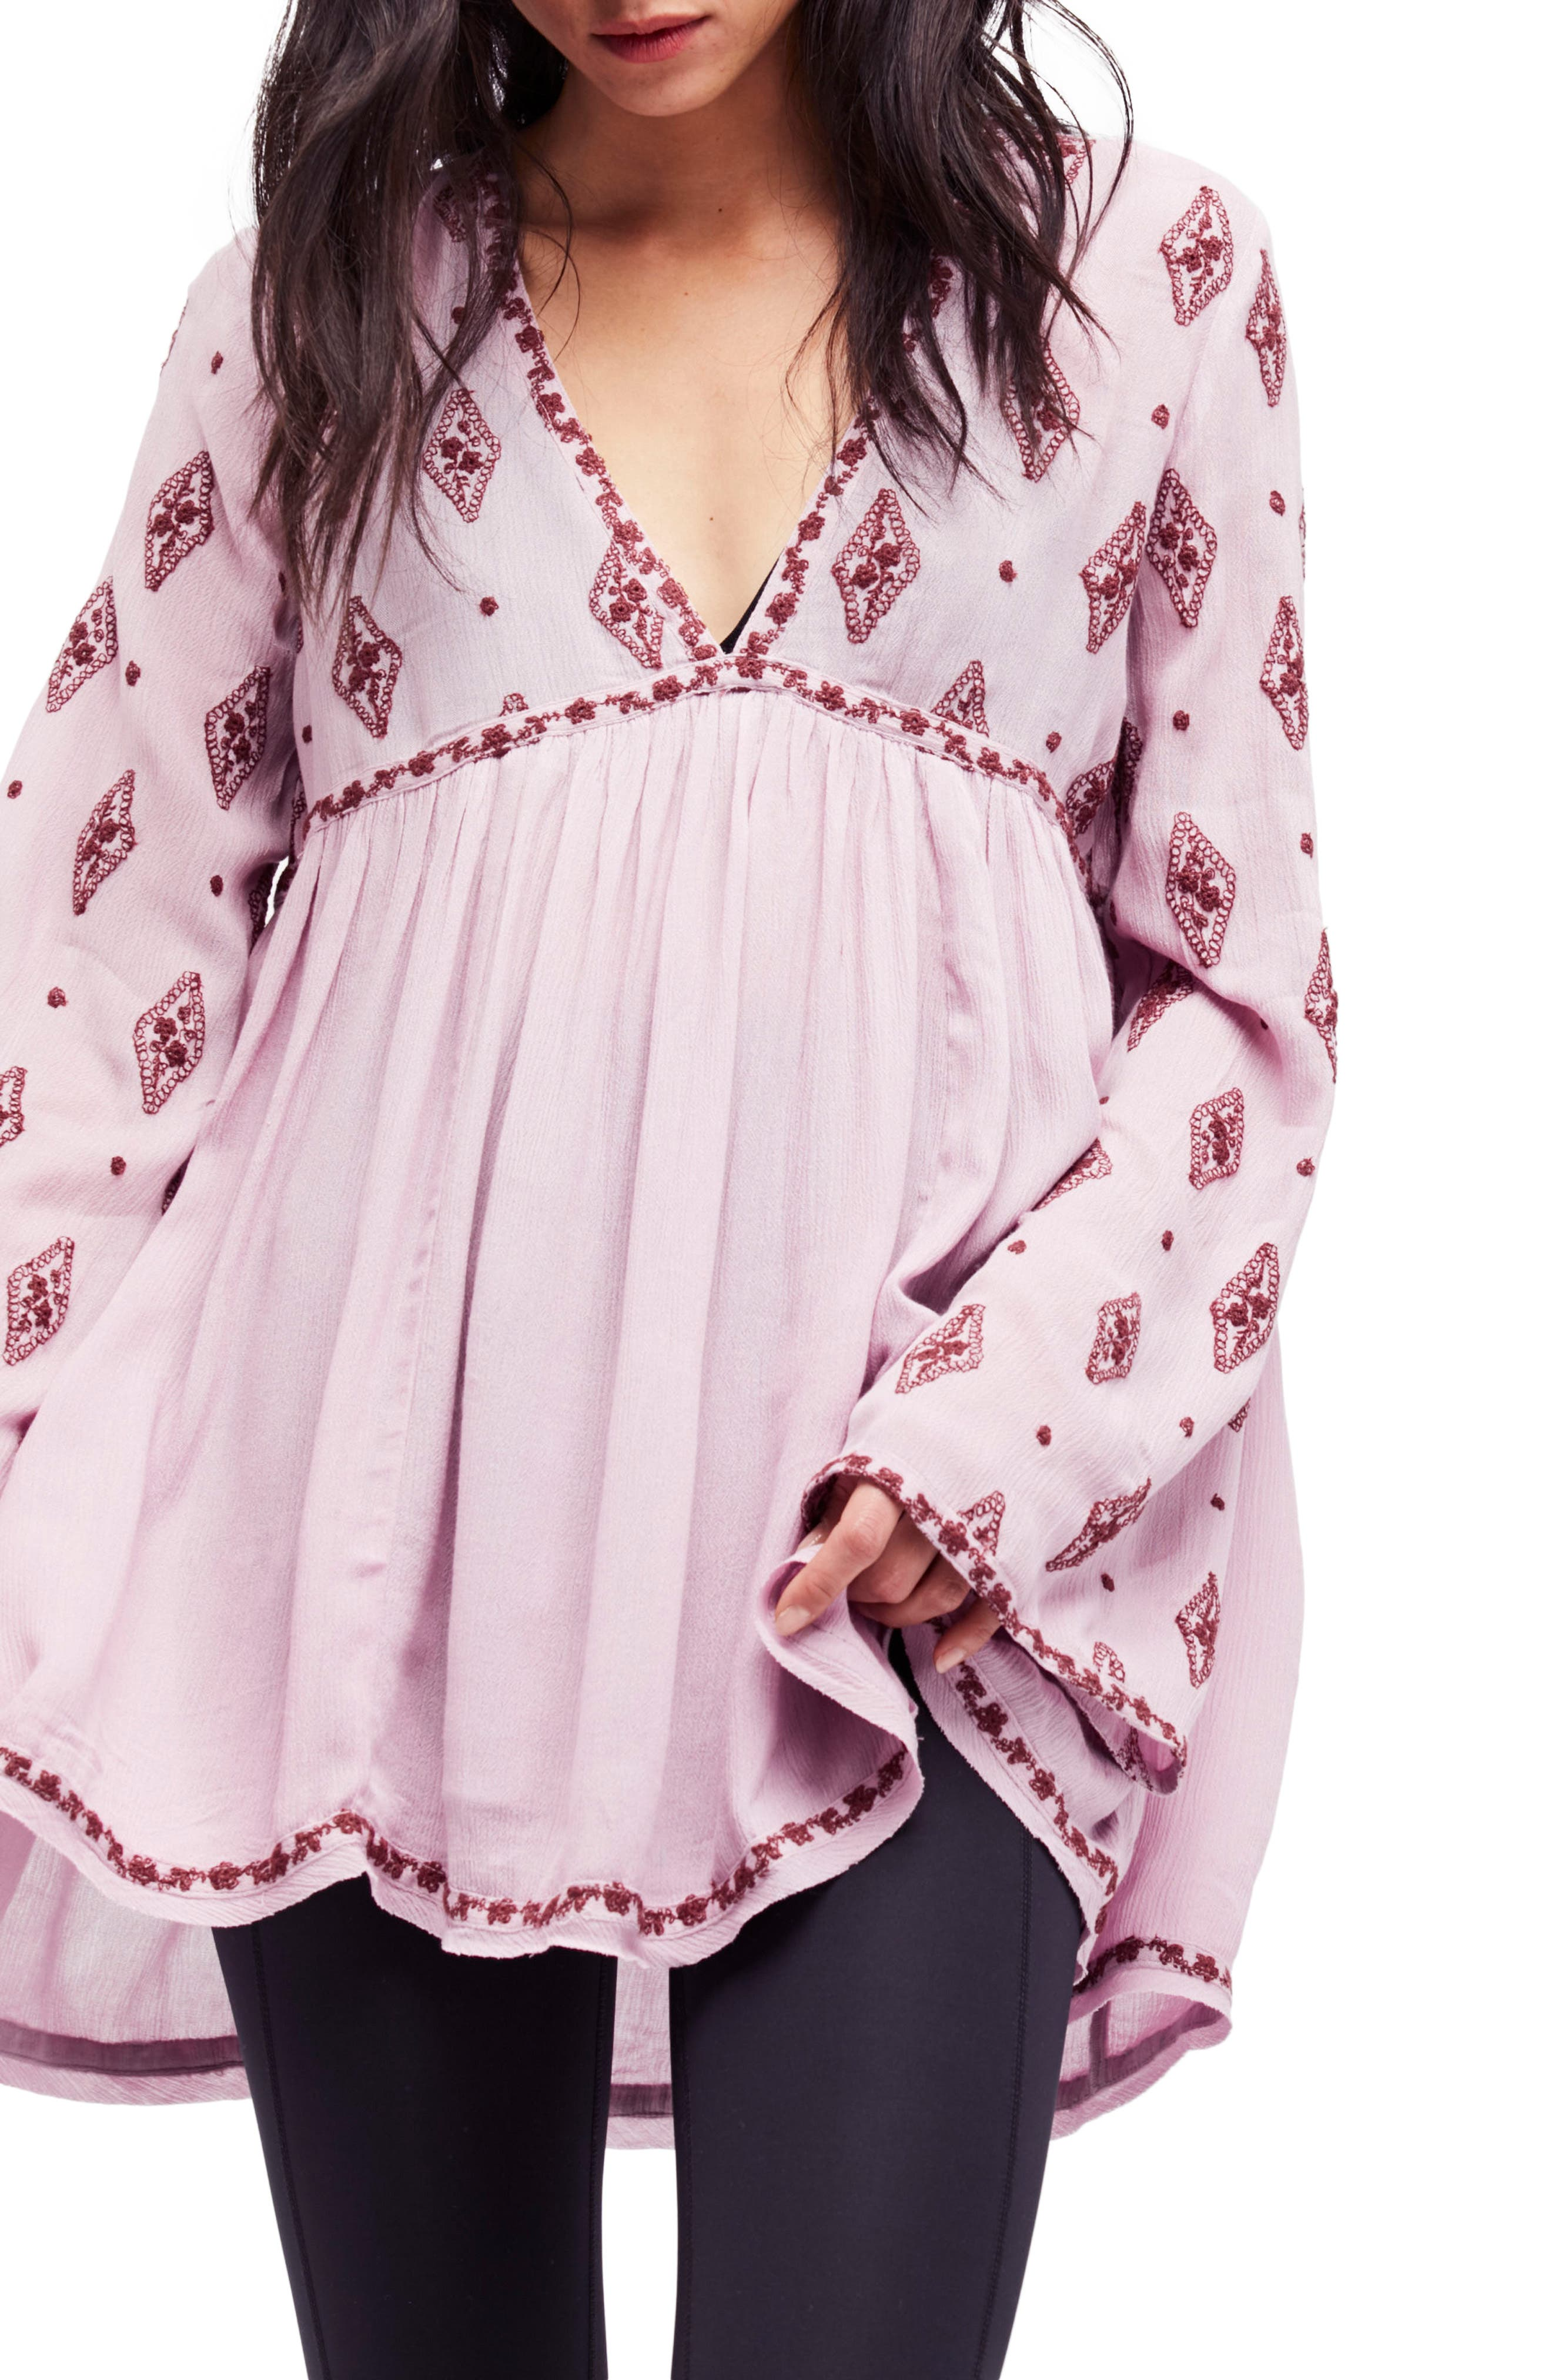 Free People Embroidered Bell Sleeve Top